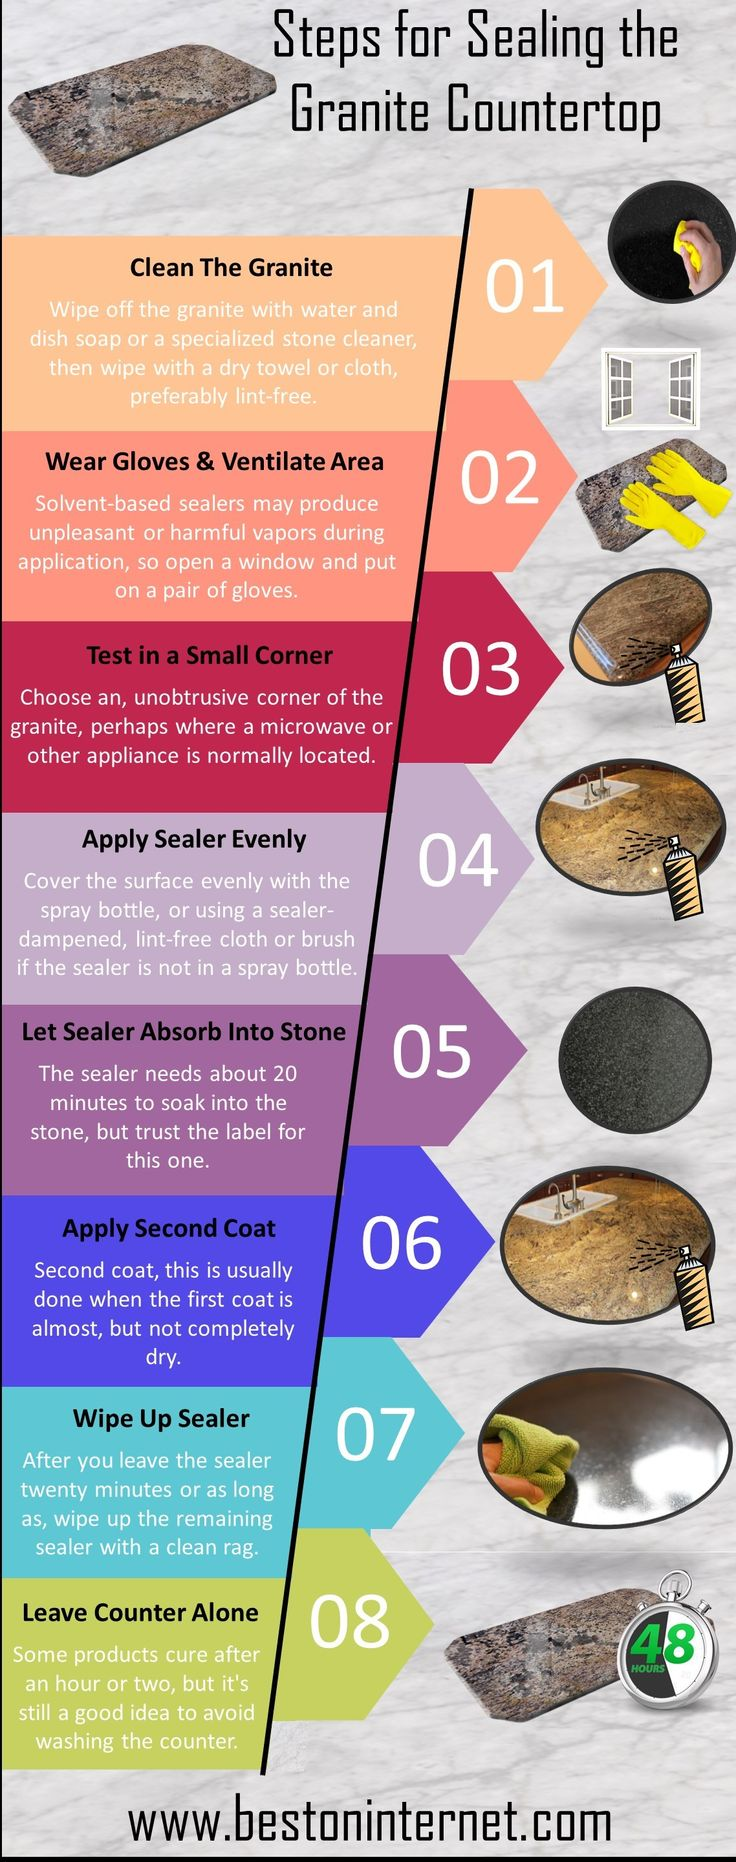 In this infographic, I have given steps for sealing the #GraniteCountertop. If you prevent stains on the granite countertop, you must be used Granite Countertop Sealer. http://www.bestoninternet.com/tools-home-improvement/household-supplies/granite-countertop-sealer-reviews/